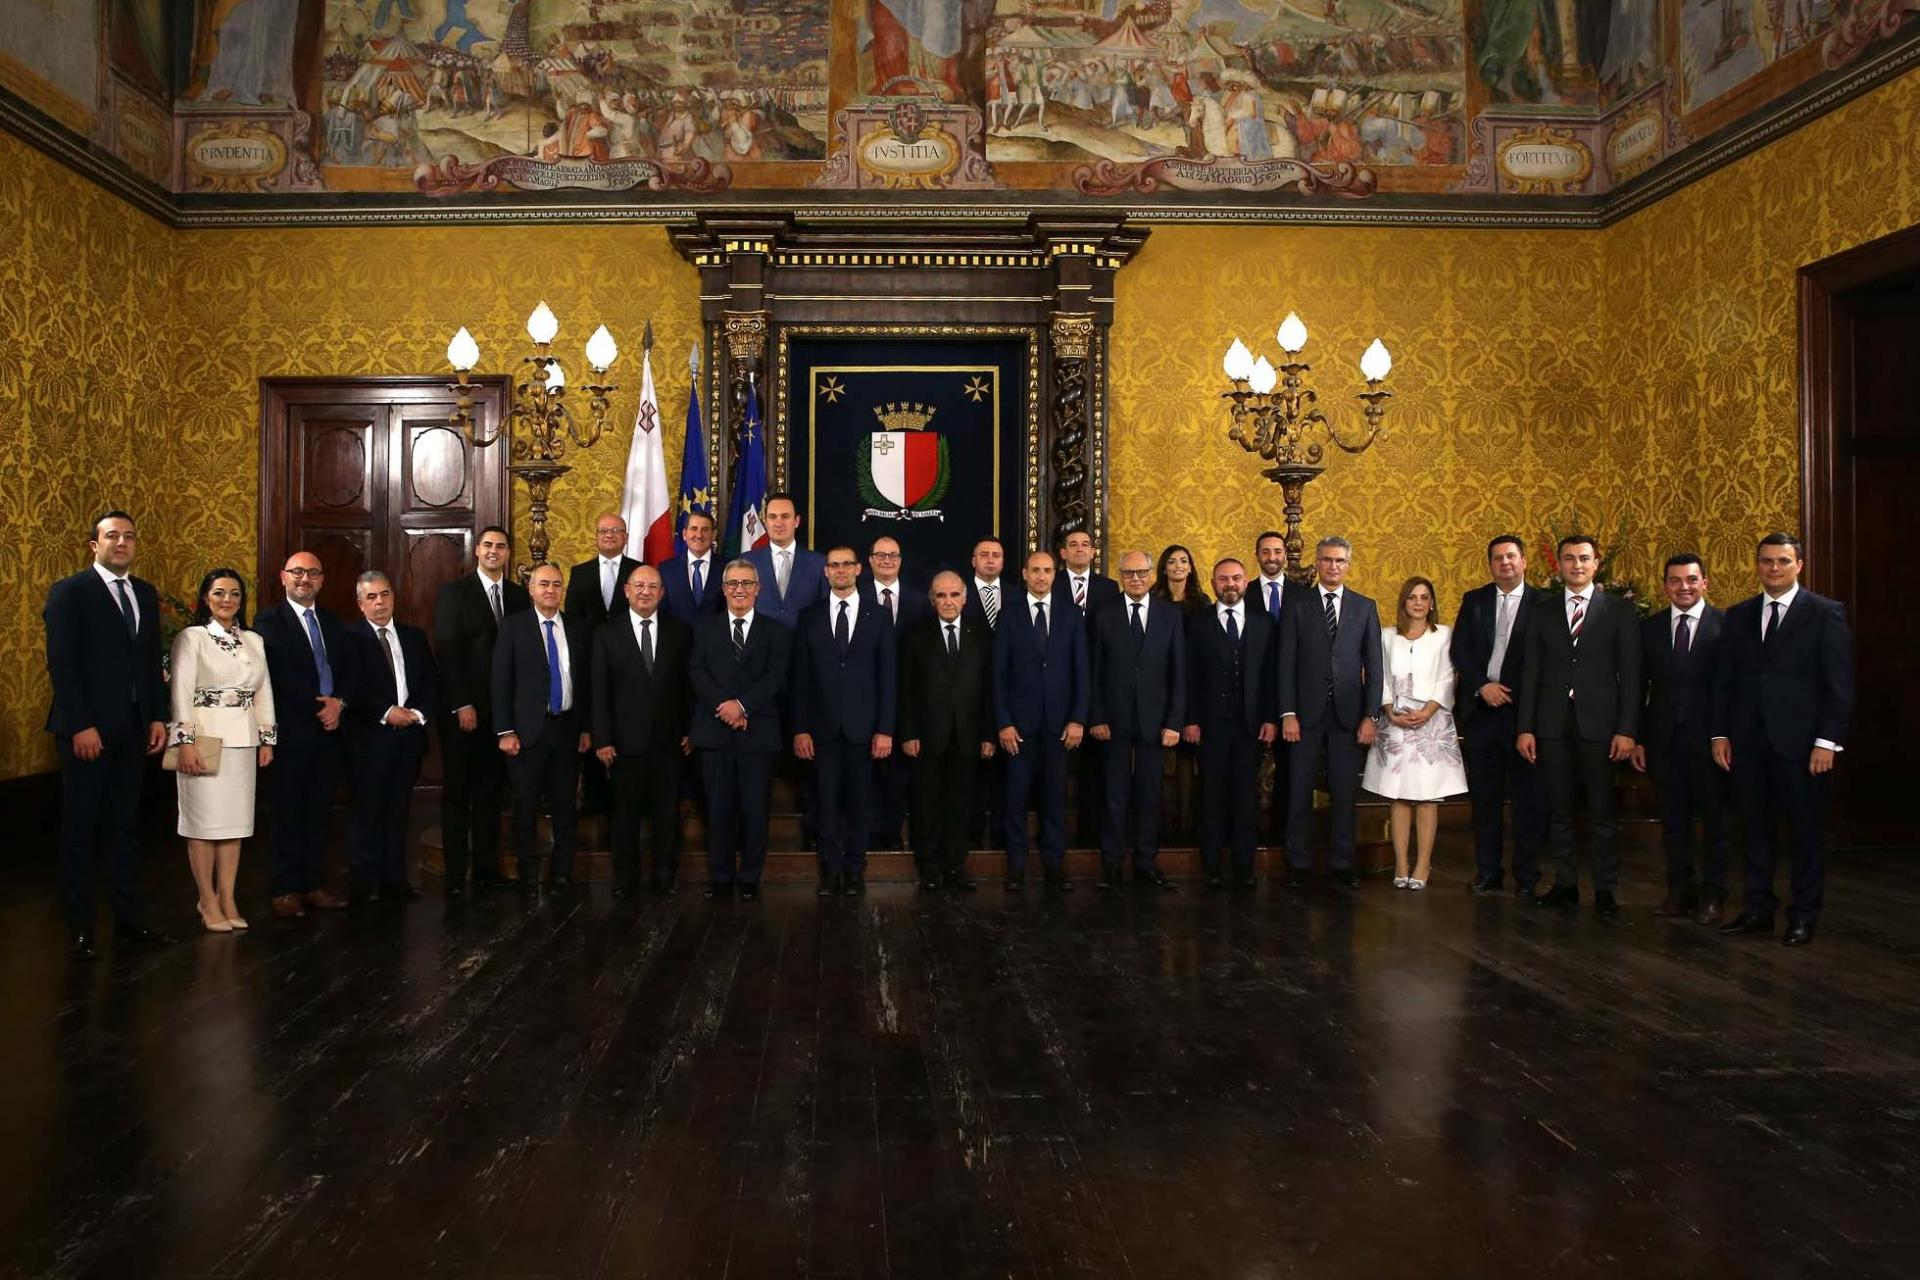 Robert Abela's new Cabinet join President George Vella in the traditional family portrait. Photo: DOI